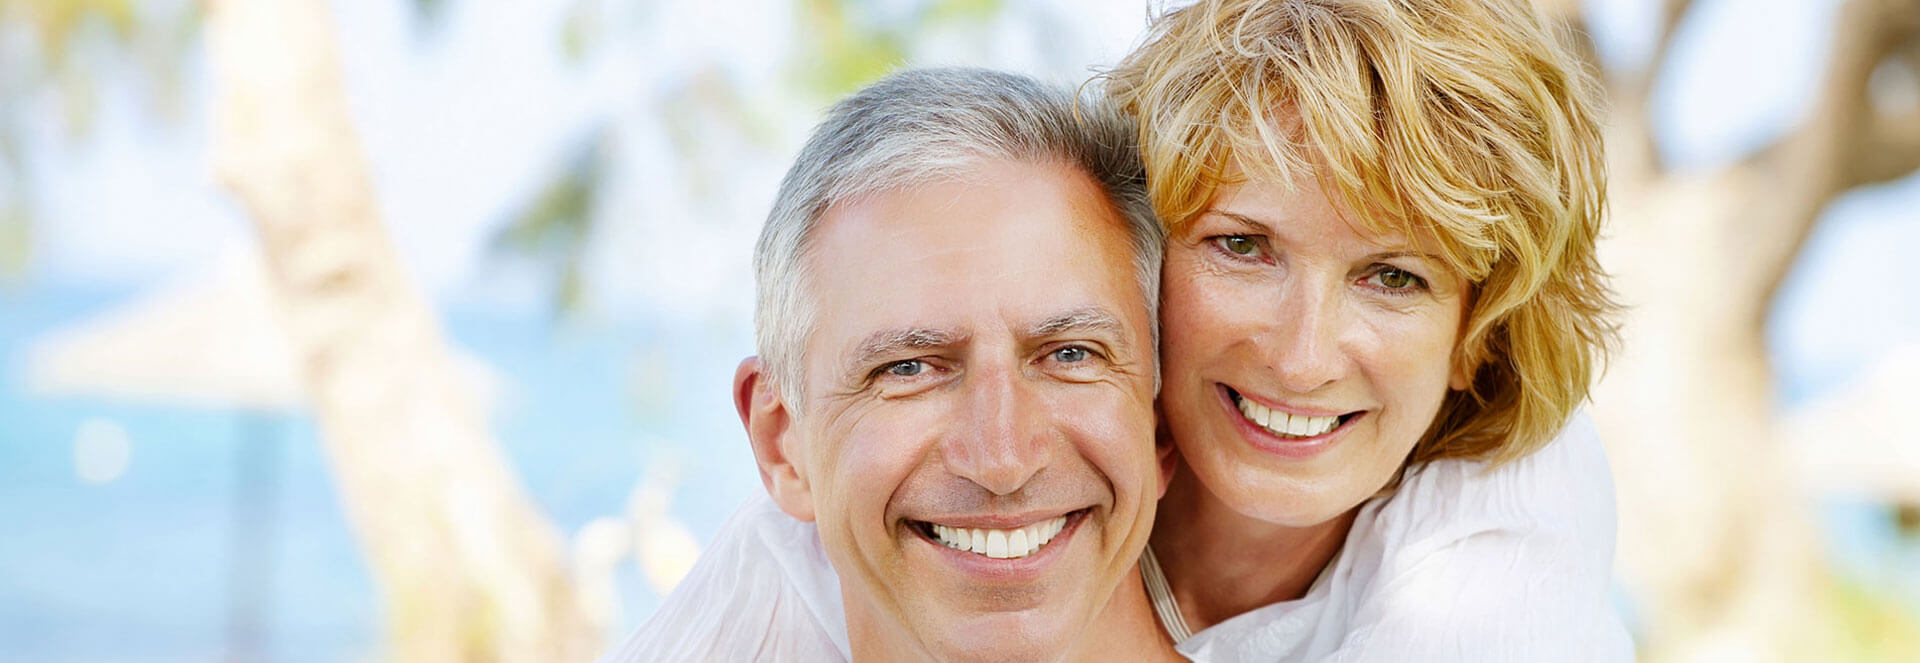 Elderly couple embracing each other smiling at the camera